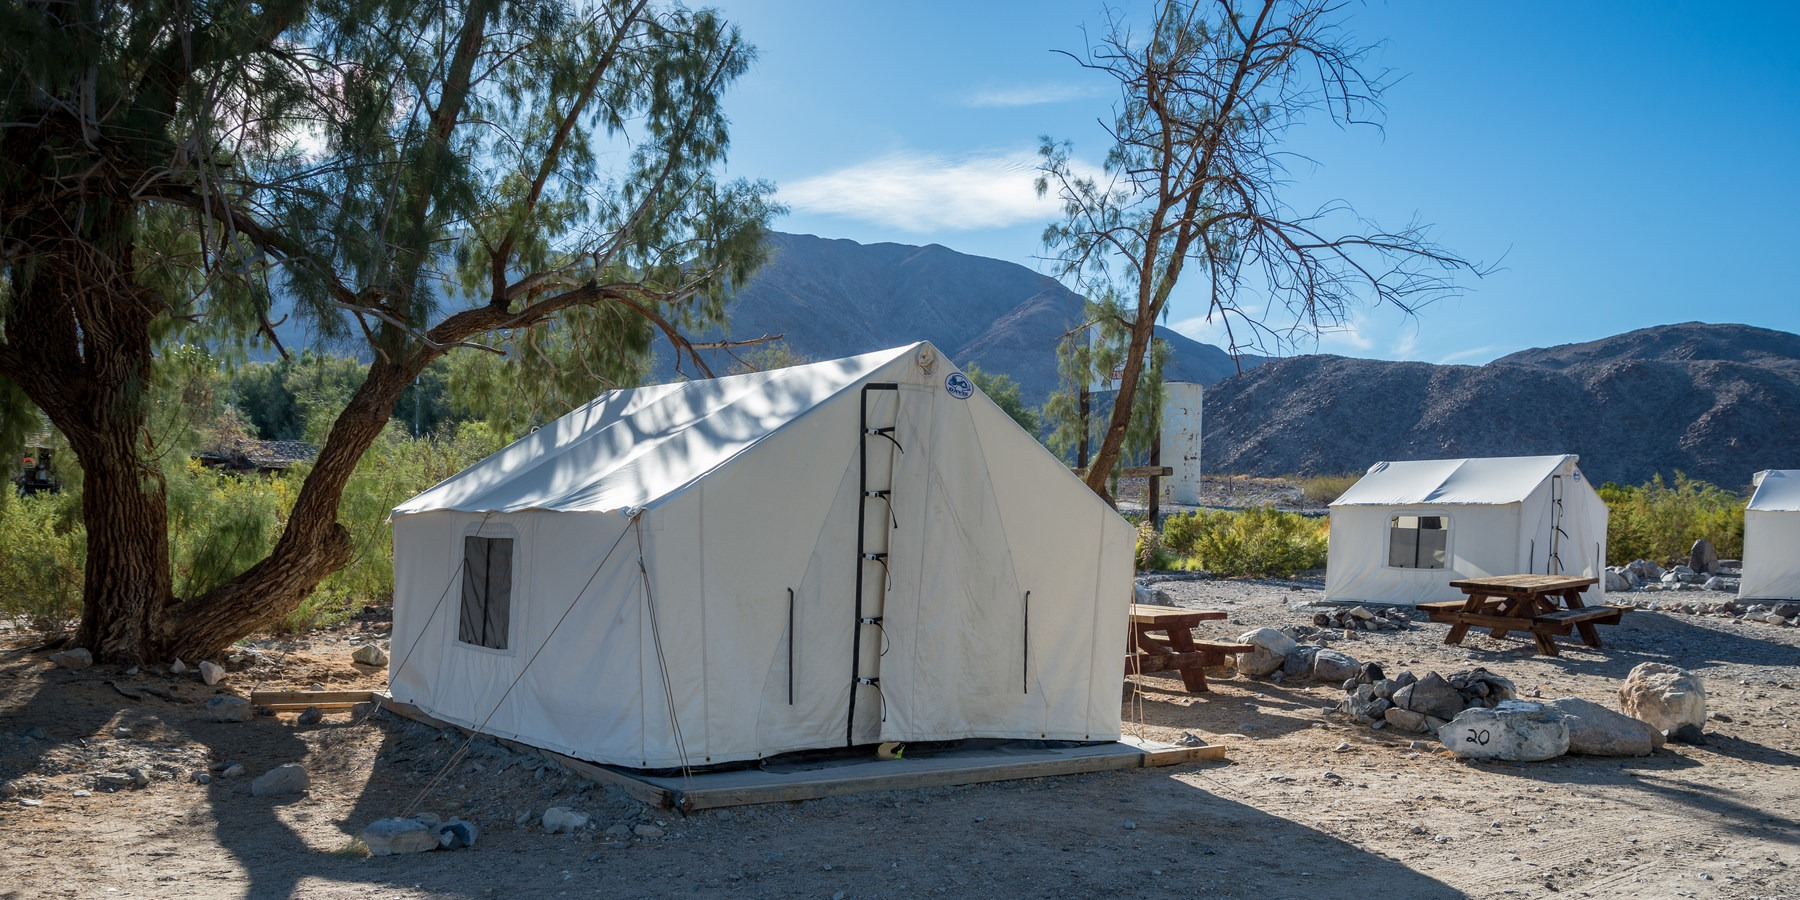 Panamint Springs C&ground; Tent cabins at Panamint Springs.- Panamint Springs C&ground ... & Panamint Springs Campground | Outdoor Project